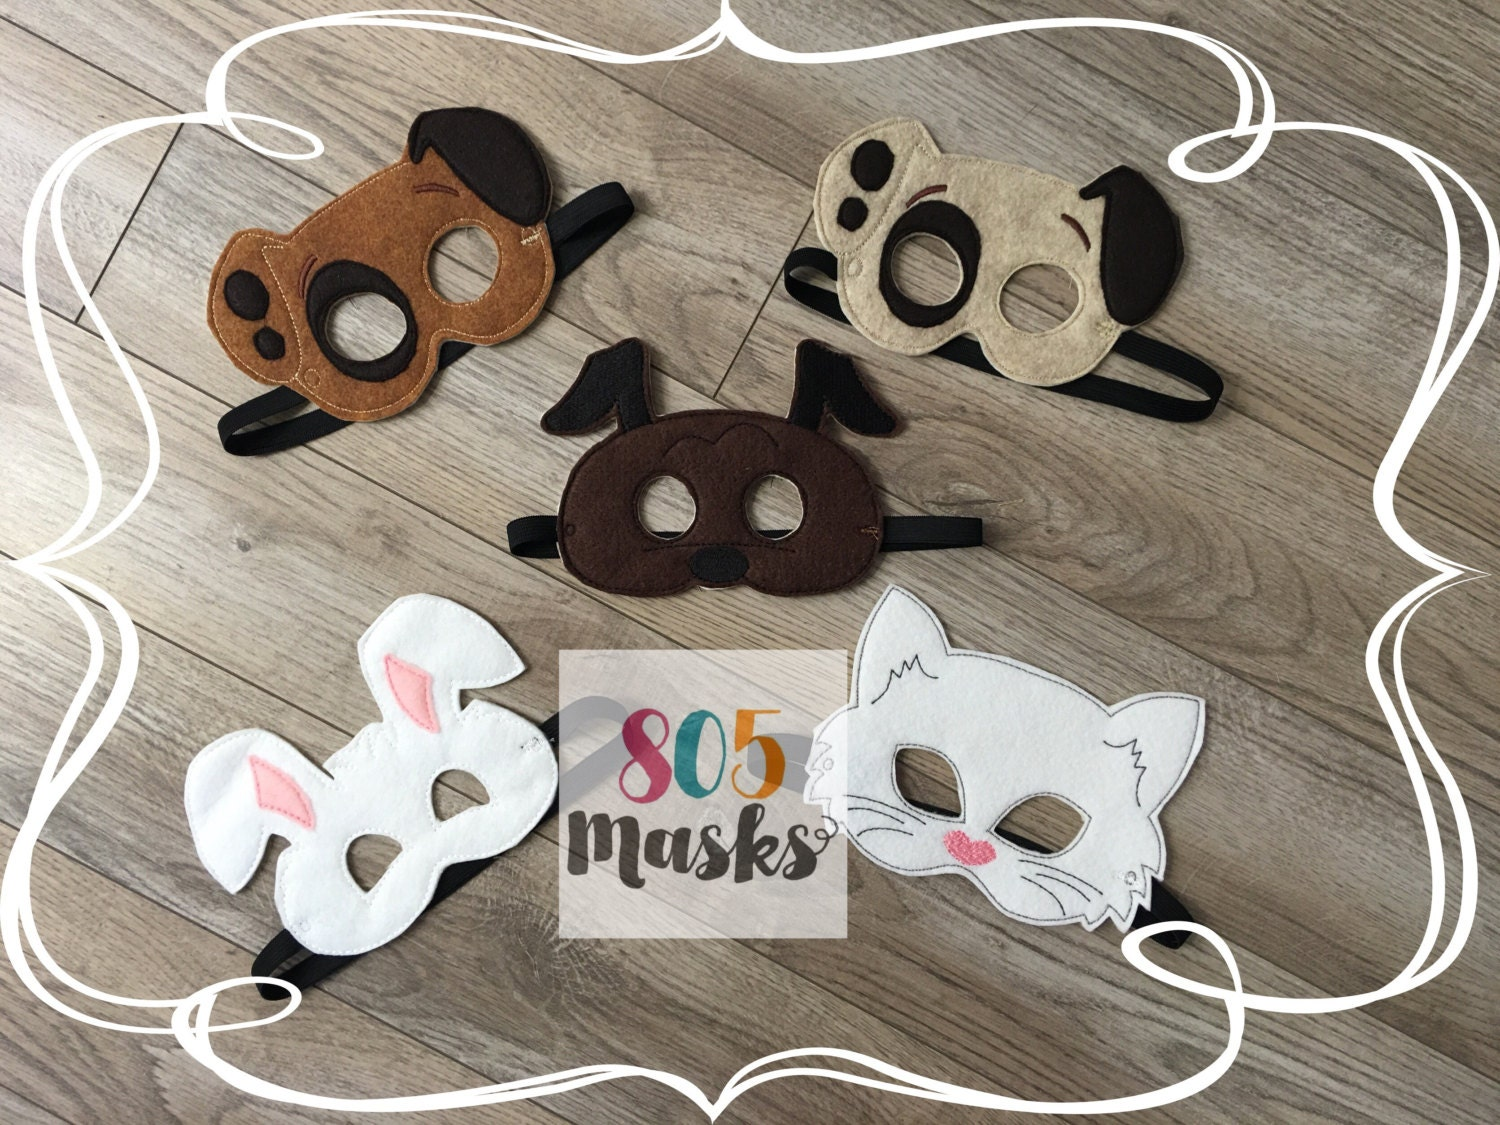 White Animal Whiskers Cat Bunny Dog Animal Accessory No Glue Halloween Costume